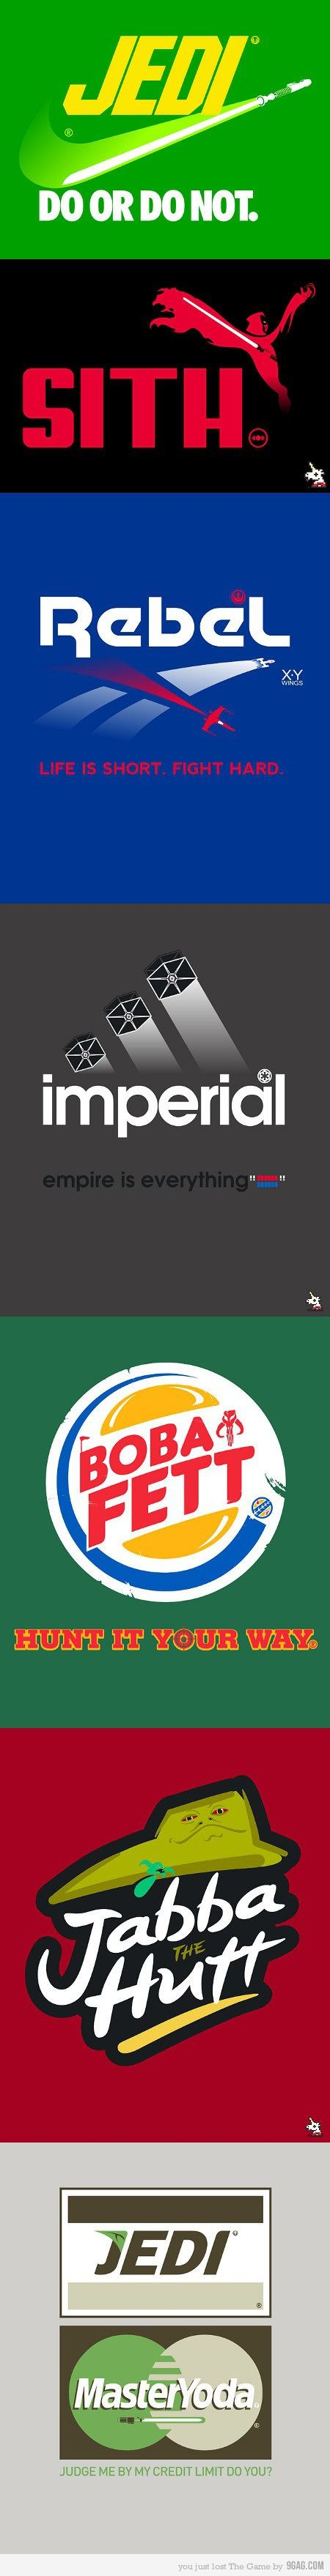 Star Wars corporate logos